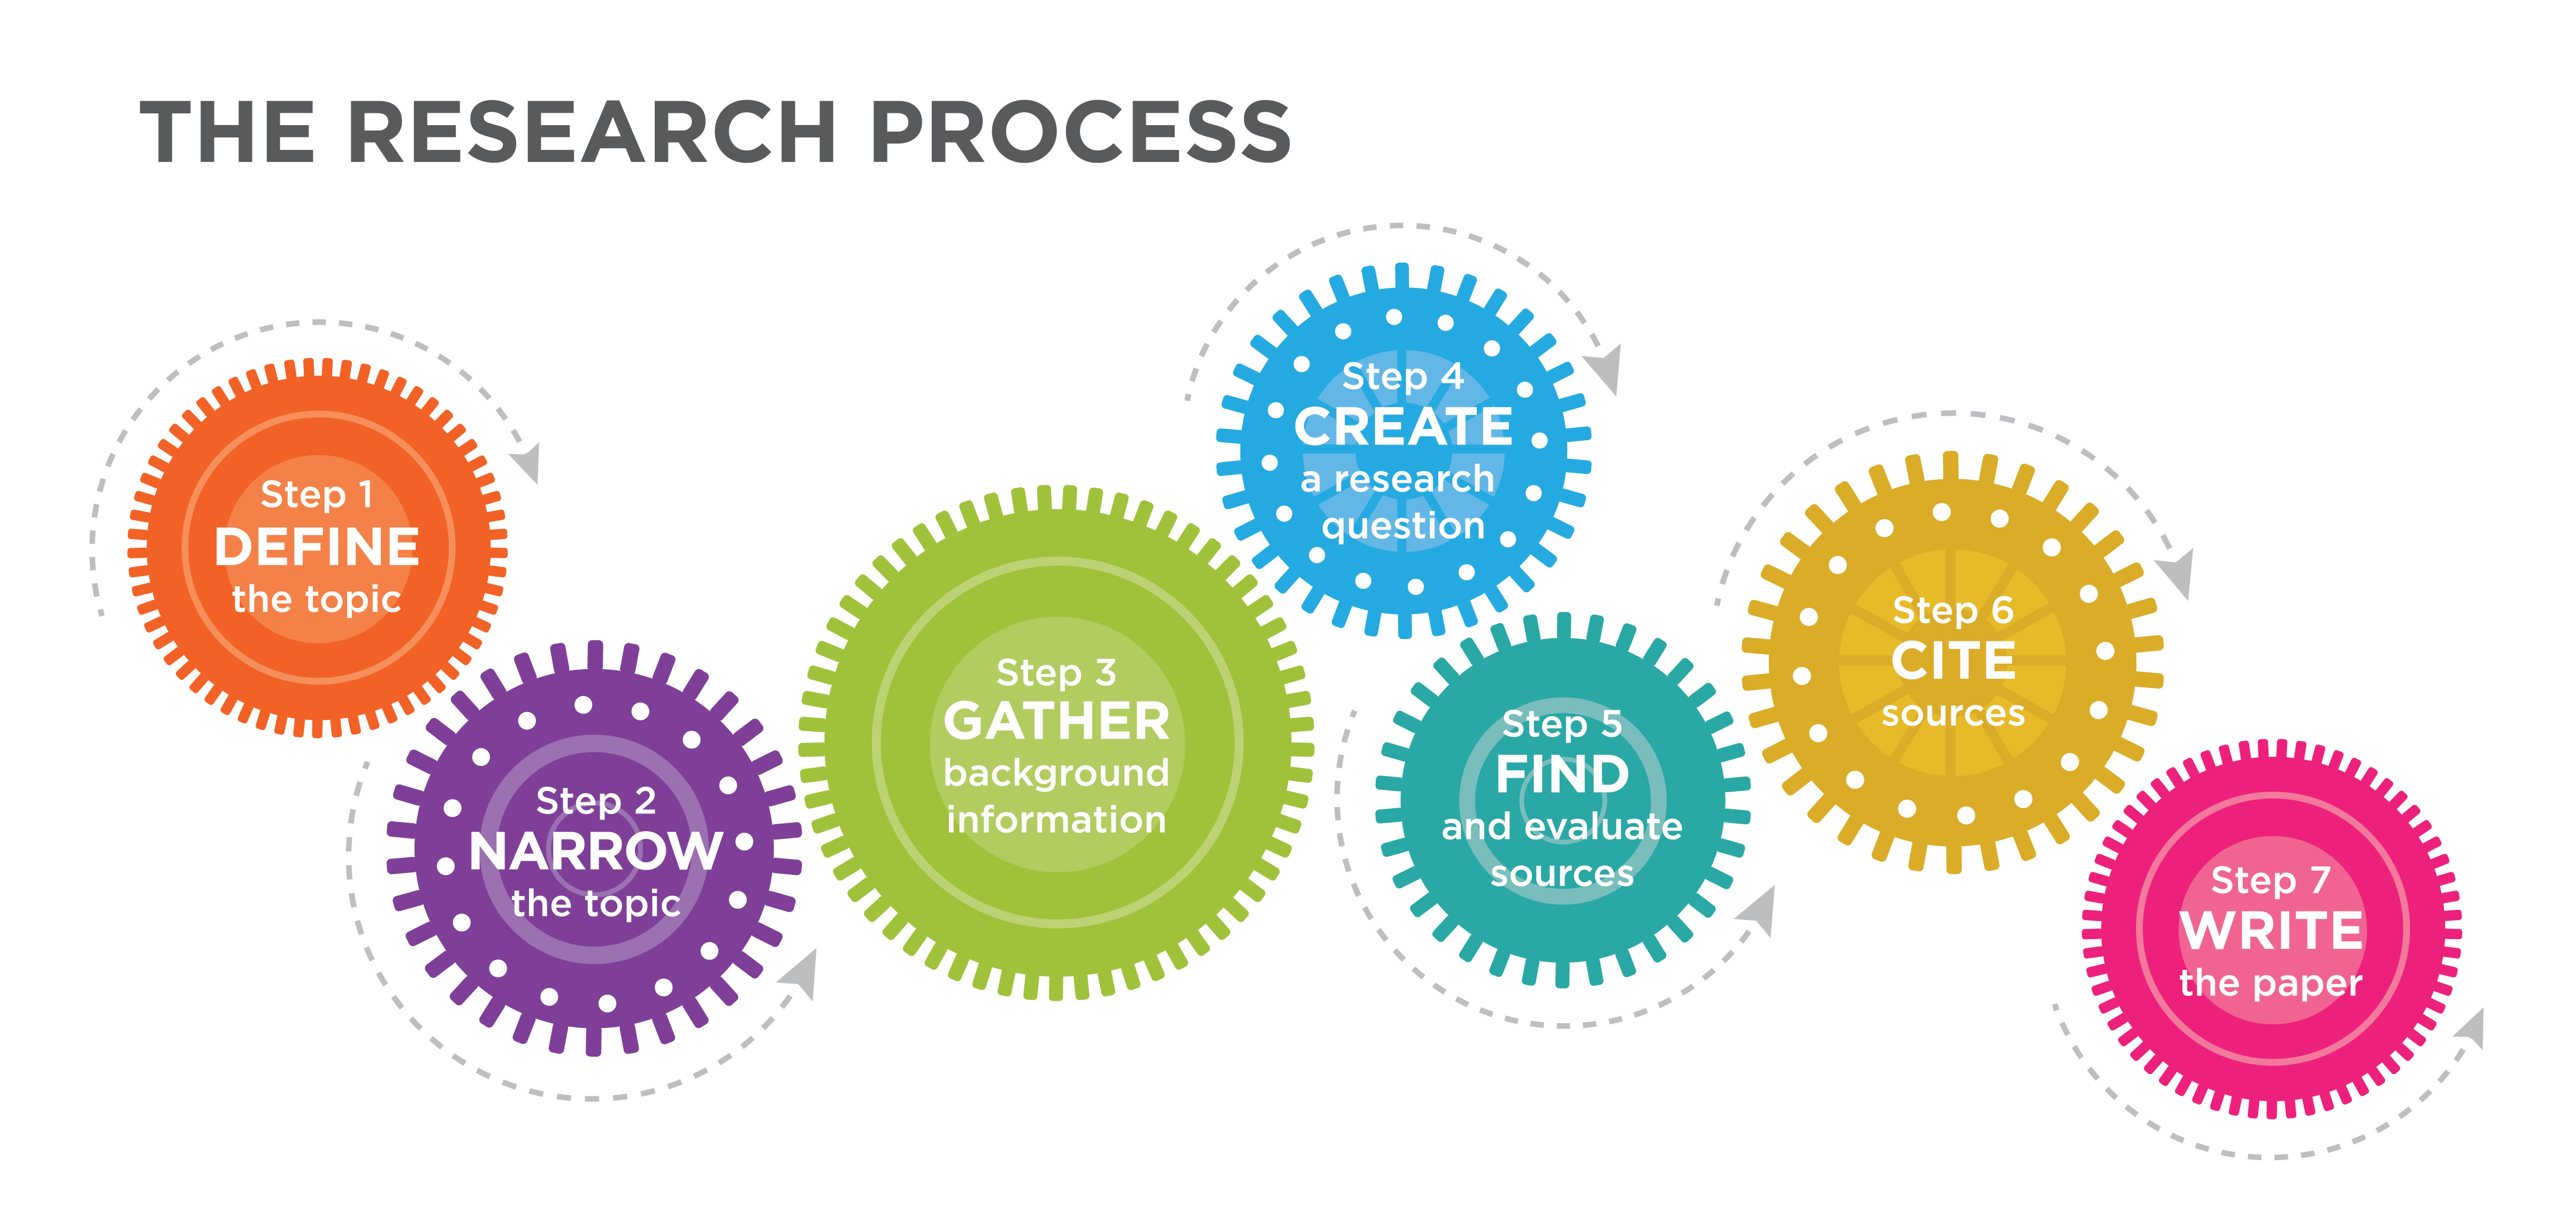 Gears showing the research process: define the topic, narrow the topic, gather background information, create a research question, find and evaluate sources, cite sources, and write the paper.